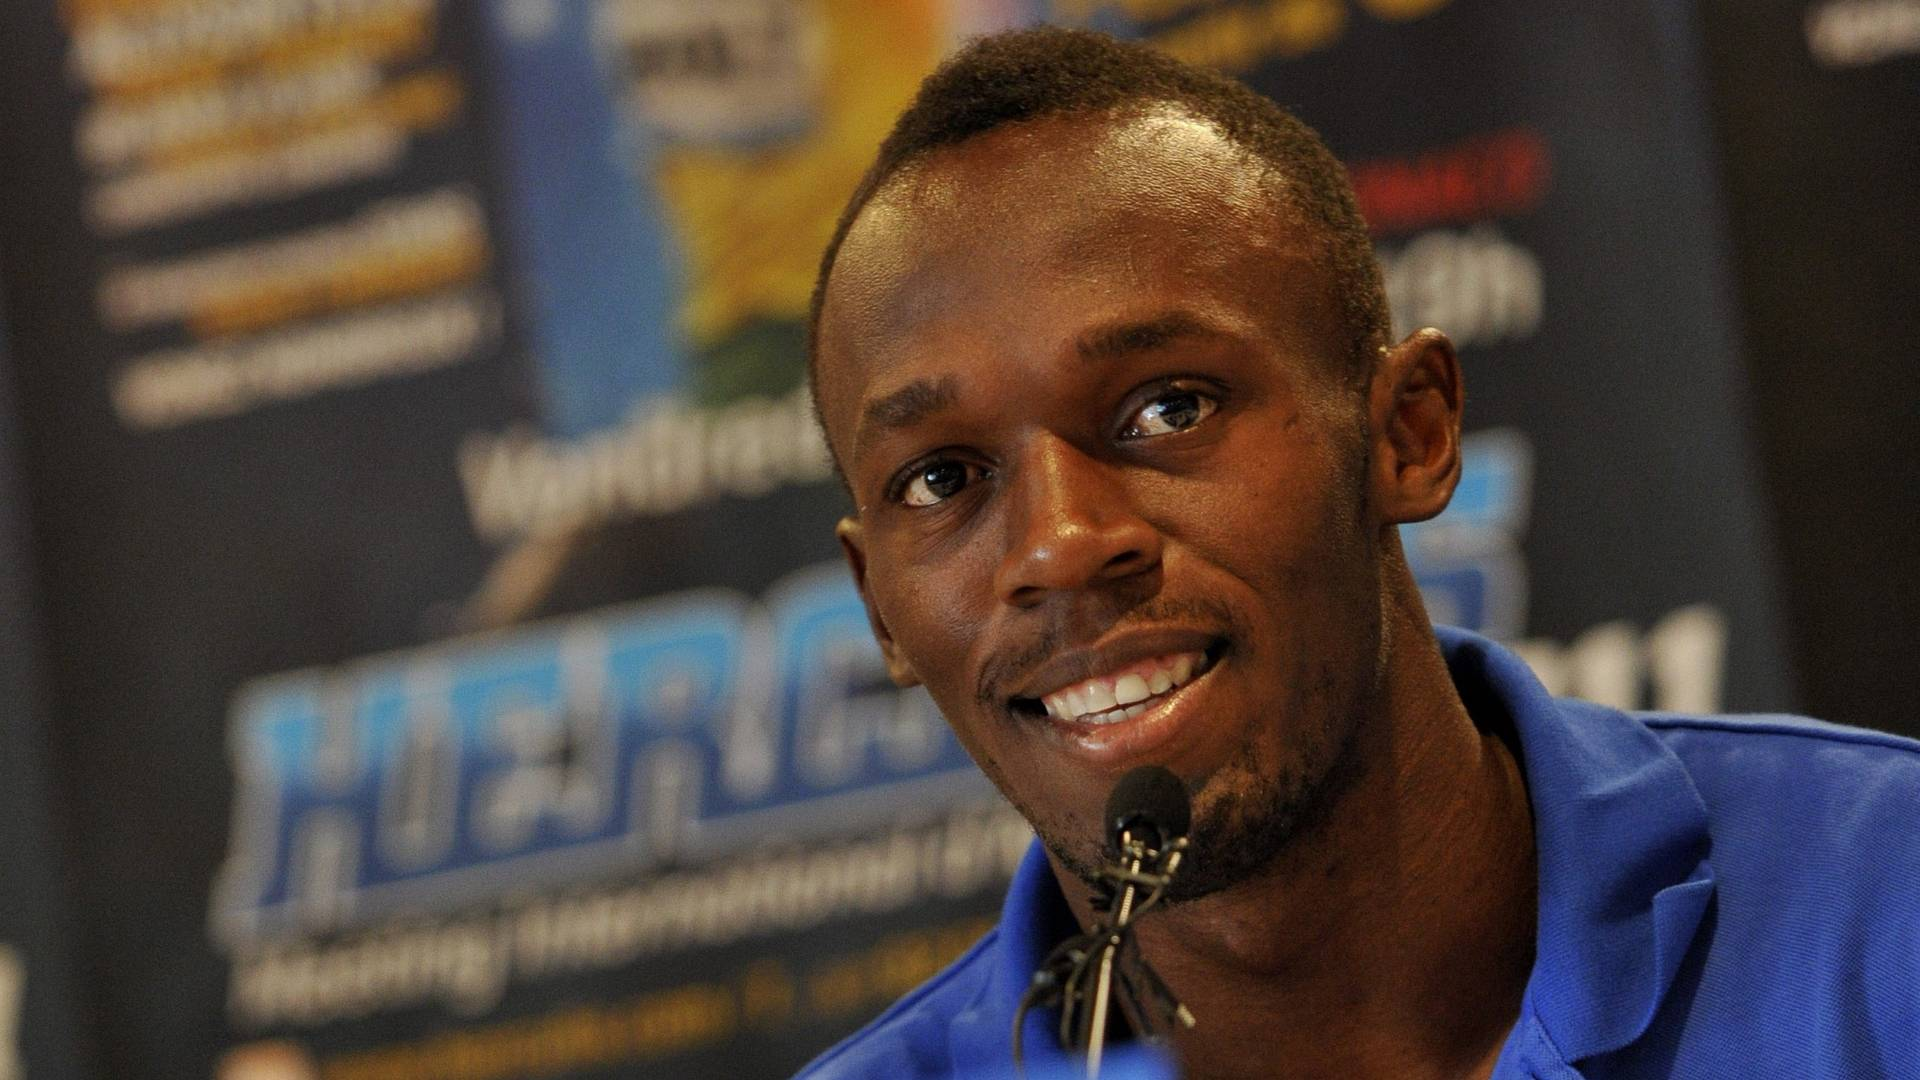 Usain Bolt concede entrevista antes da Liga de Diamante, em Mnaco (22/07/2011)